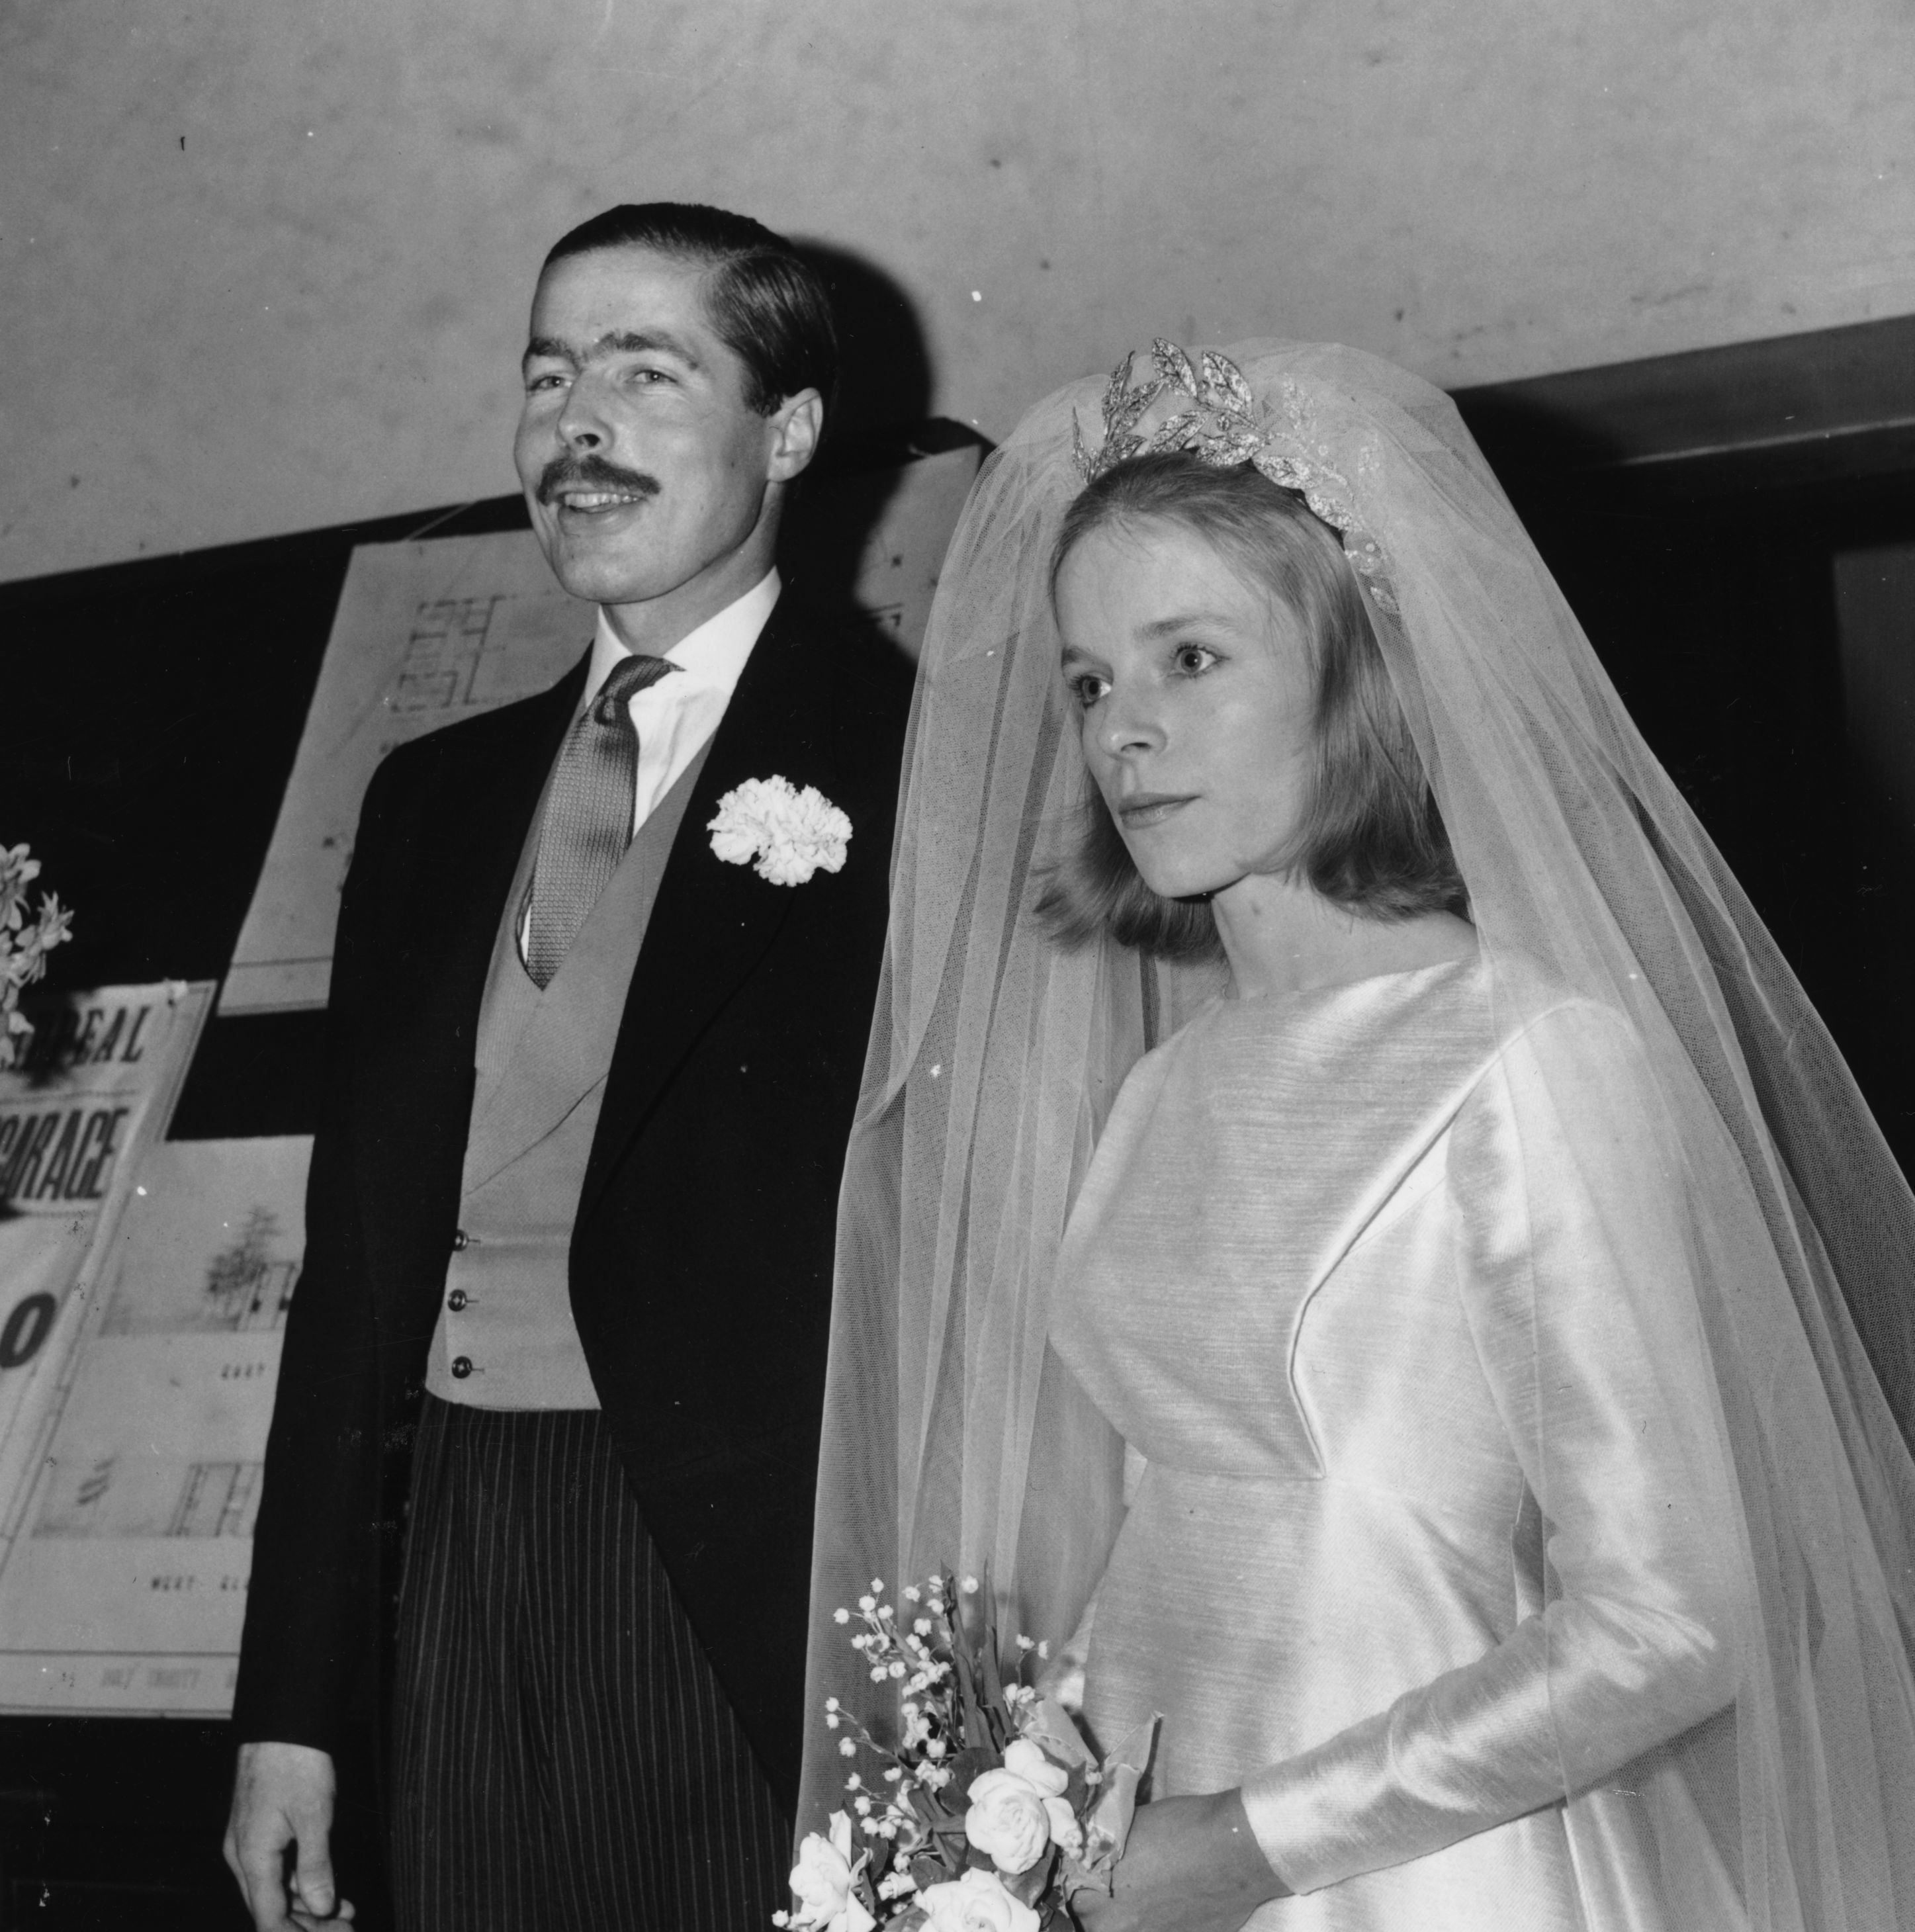 Lord and Lady Lucan on their wedding day in